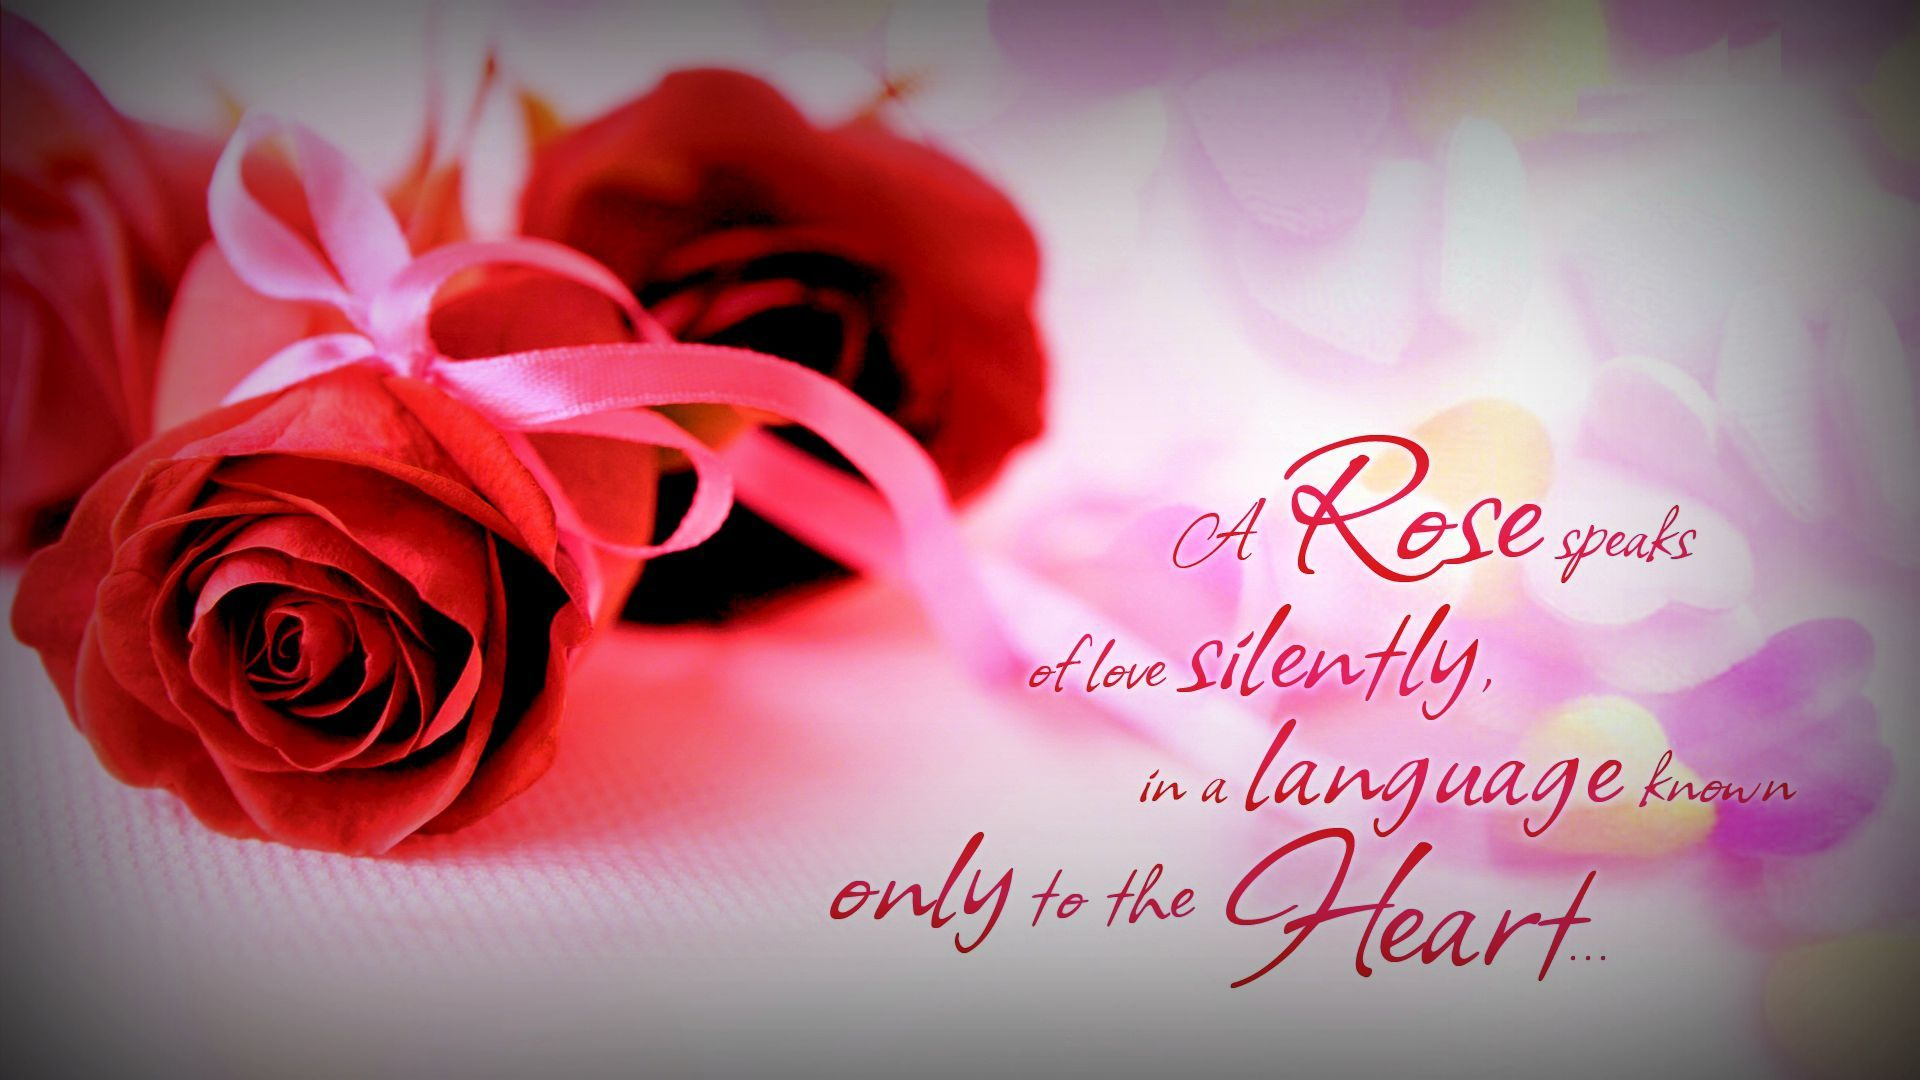 A rose speaks high quality wallpapers qoutes and blessings a rose speaks romantic flowersbeautiful flowersbeautiful love quotesmorning izmirmasajfo Image collections